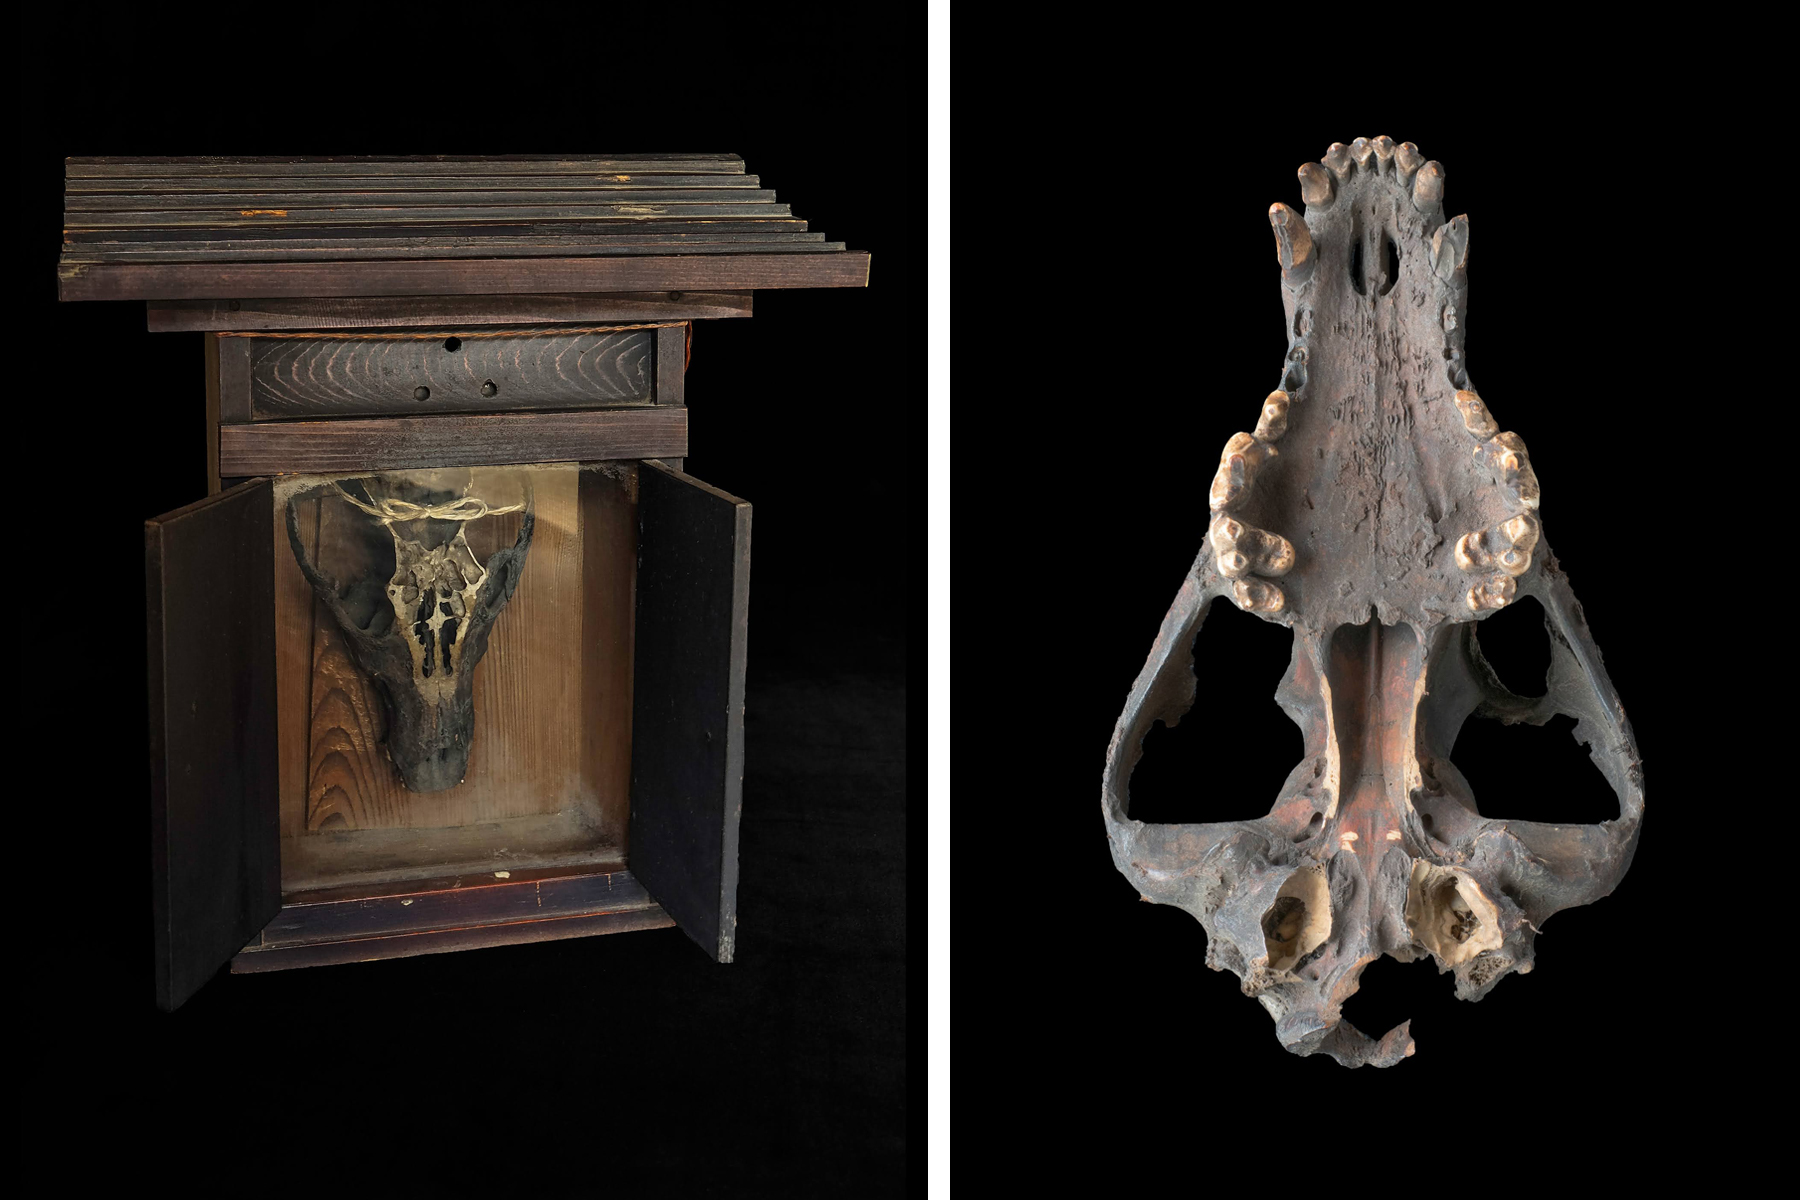 The skull of a Japanese wolf stored in a small wooden shrine and owned by Chichibu resident Kanzo Tahira. From photographer Michiko Hayashi's photobook, Hodophylax: The Guardian of the Path. ©2017 MICHIKO HAYASHI / HODOPHYLAX